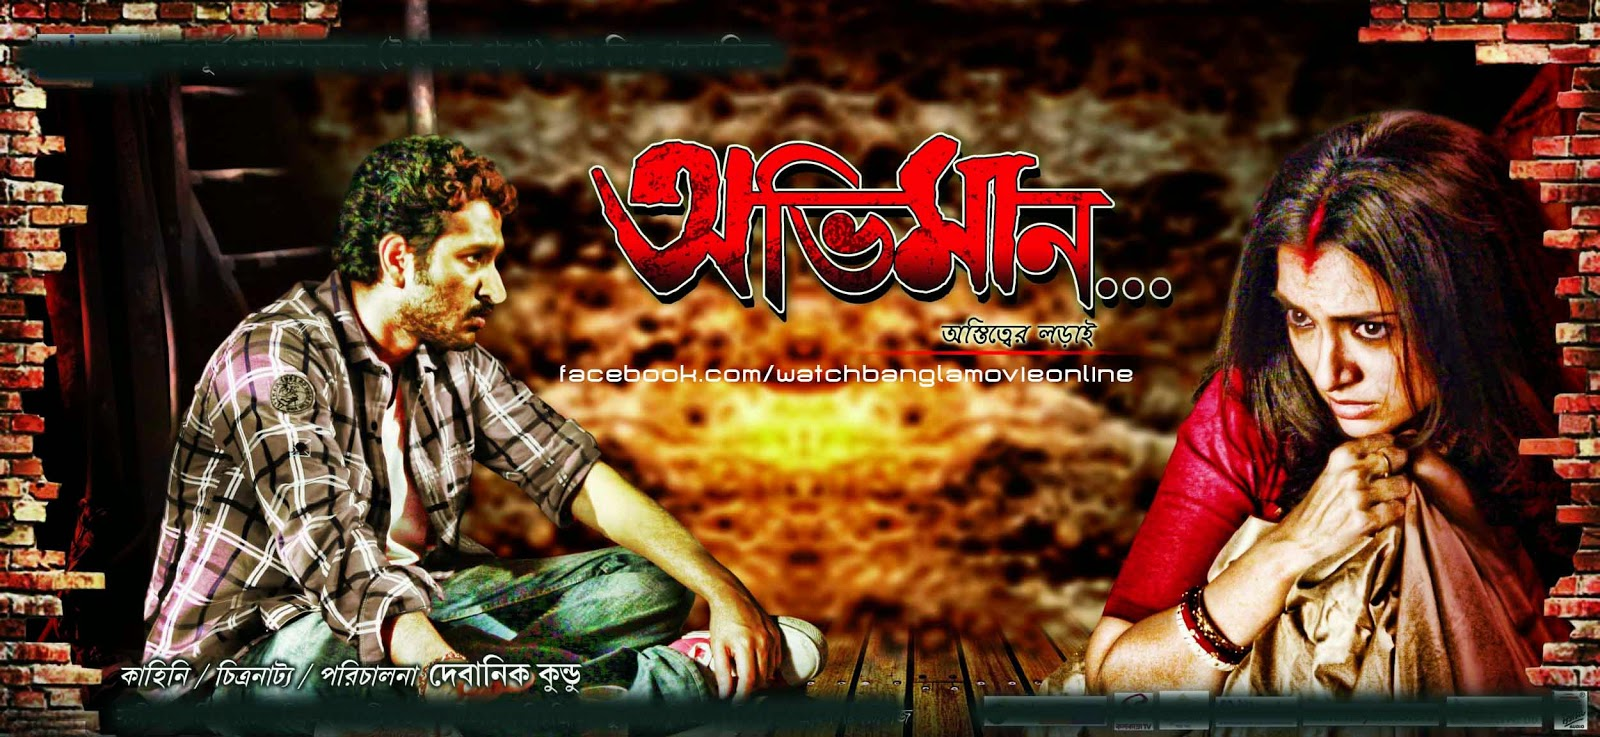 naw kolkata movies click hear..................... Abhiman+2012+bengali+movie+%25282%2529